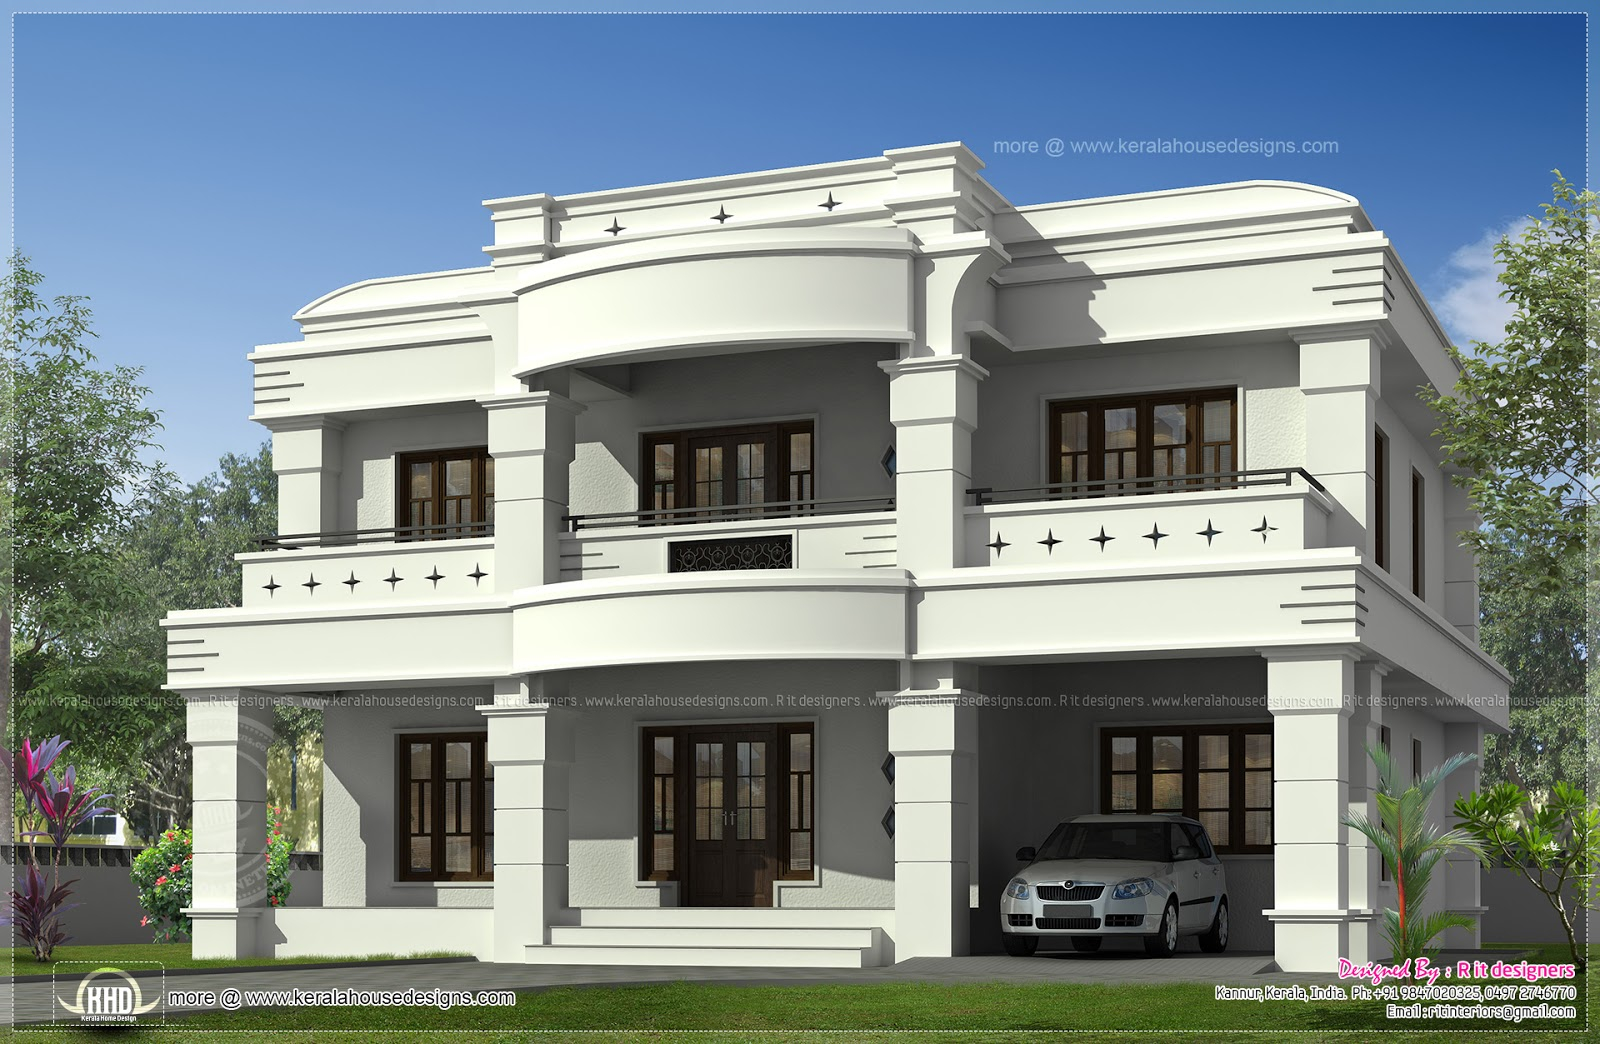 Glamorous Double Storied Luxury Home Exterior Kerala Design Floor - Kaf Mobile pertaining to Indian Home Exterior Design